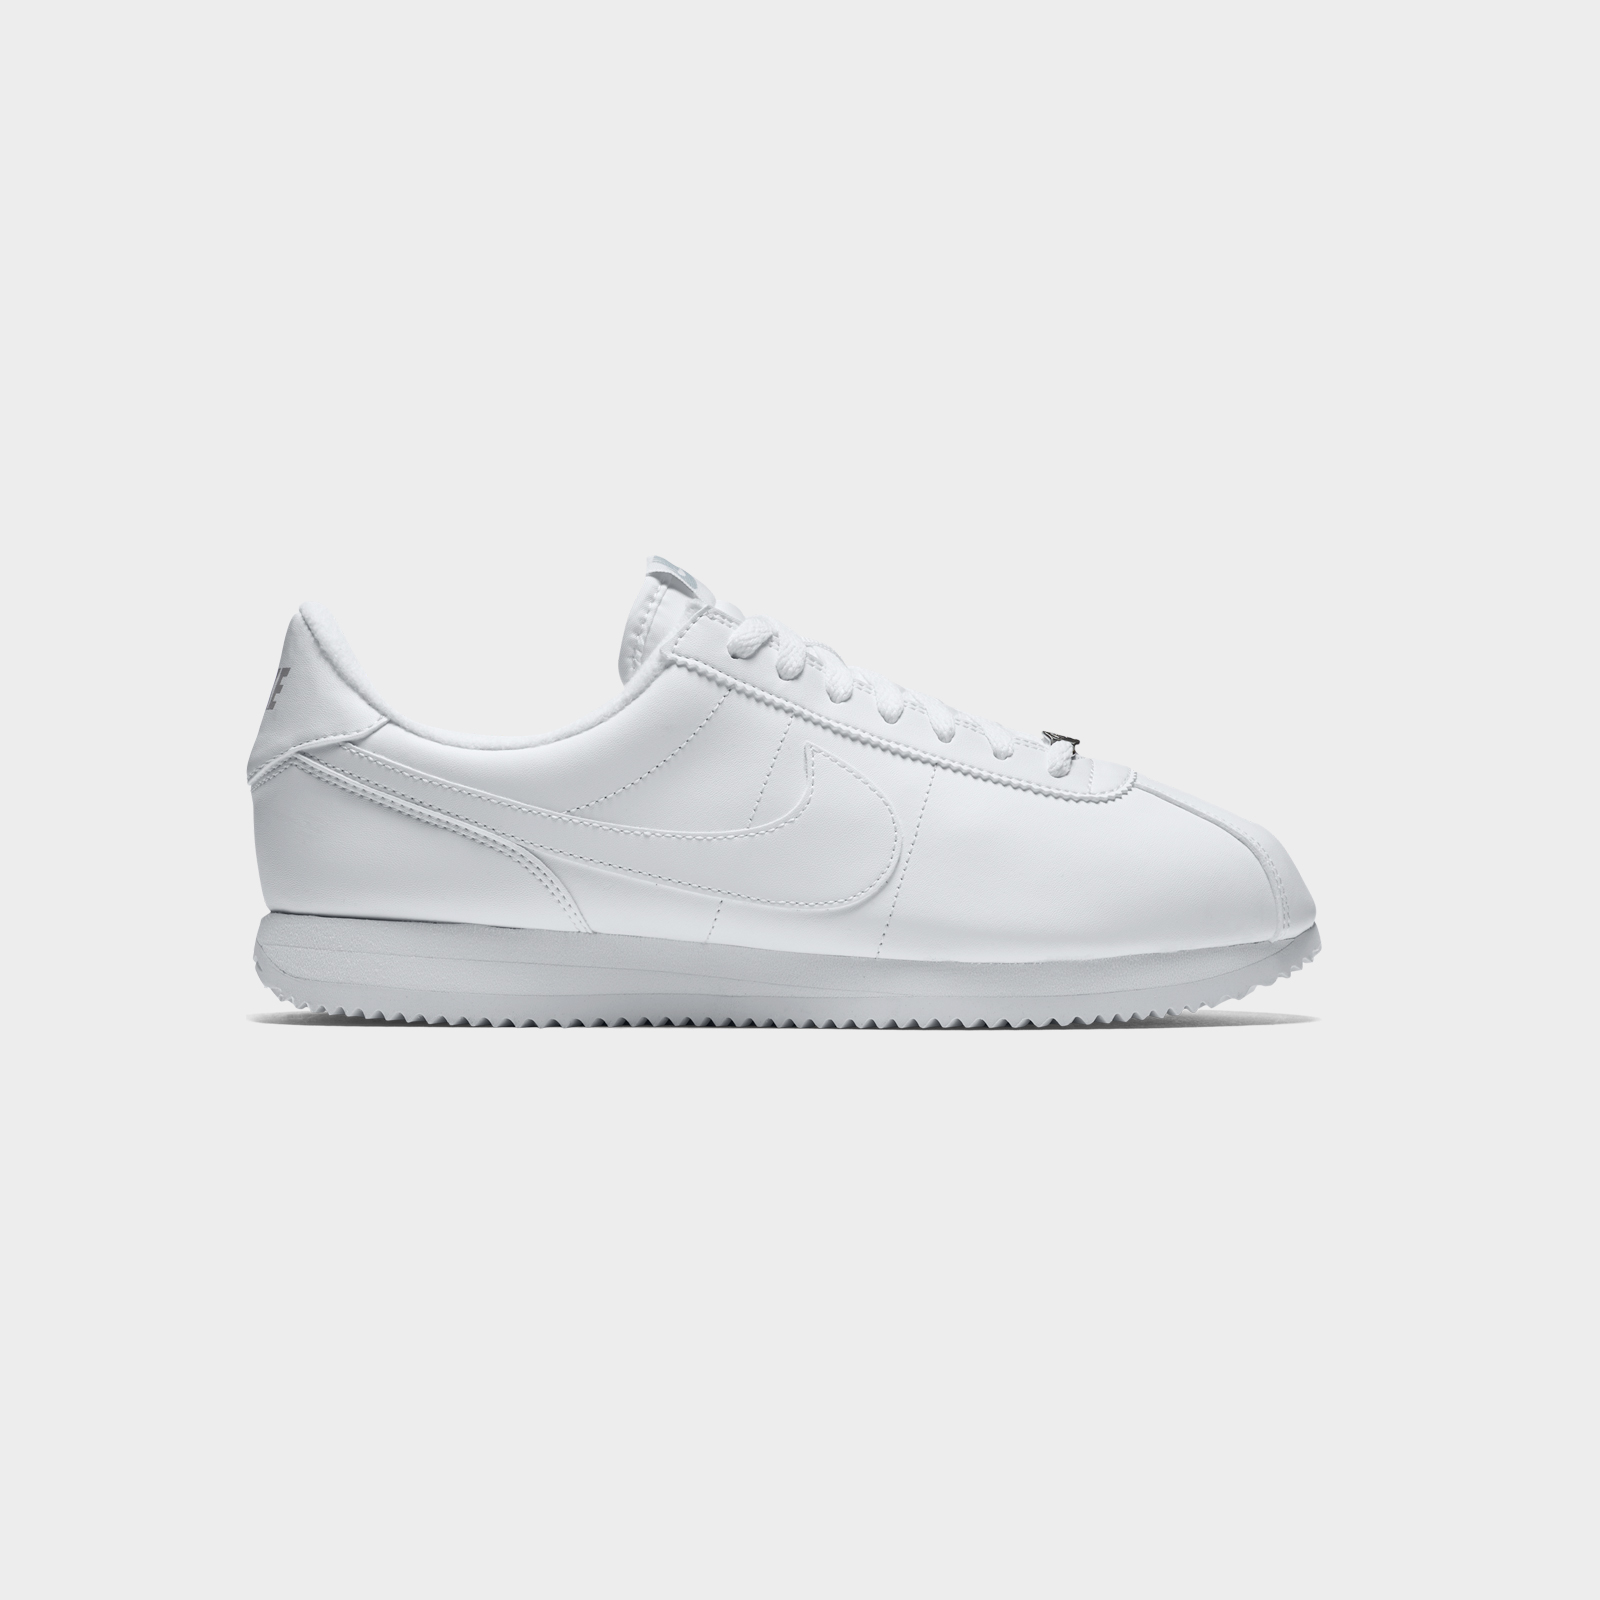 info for 74742 89716 Nike Cortez Basic Leather - 819719-110 - Sneakersnstuff ...